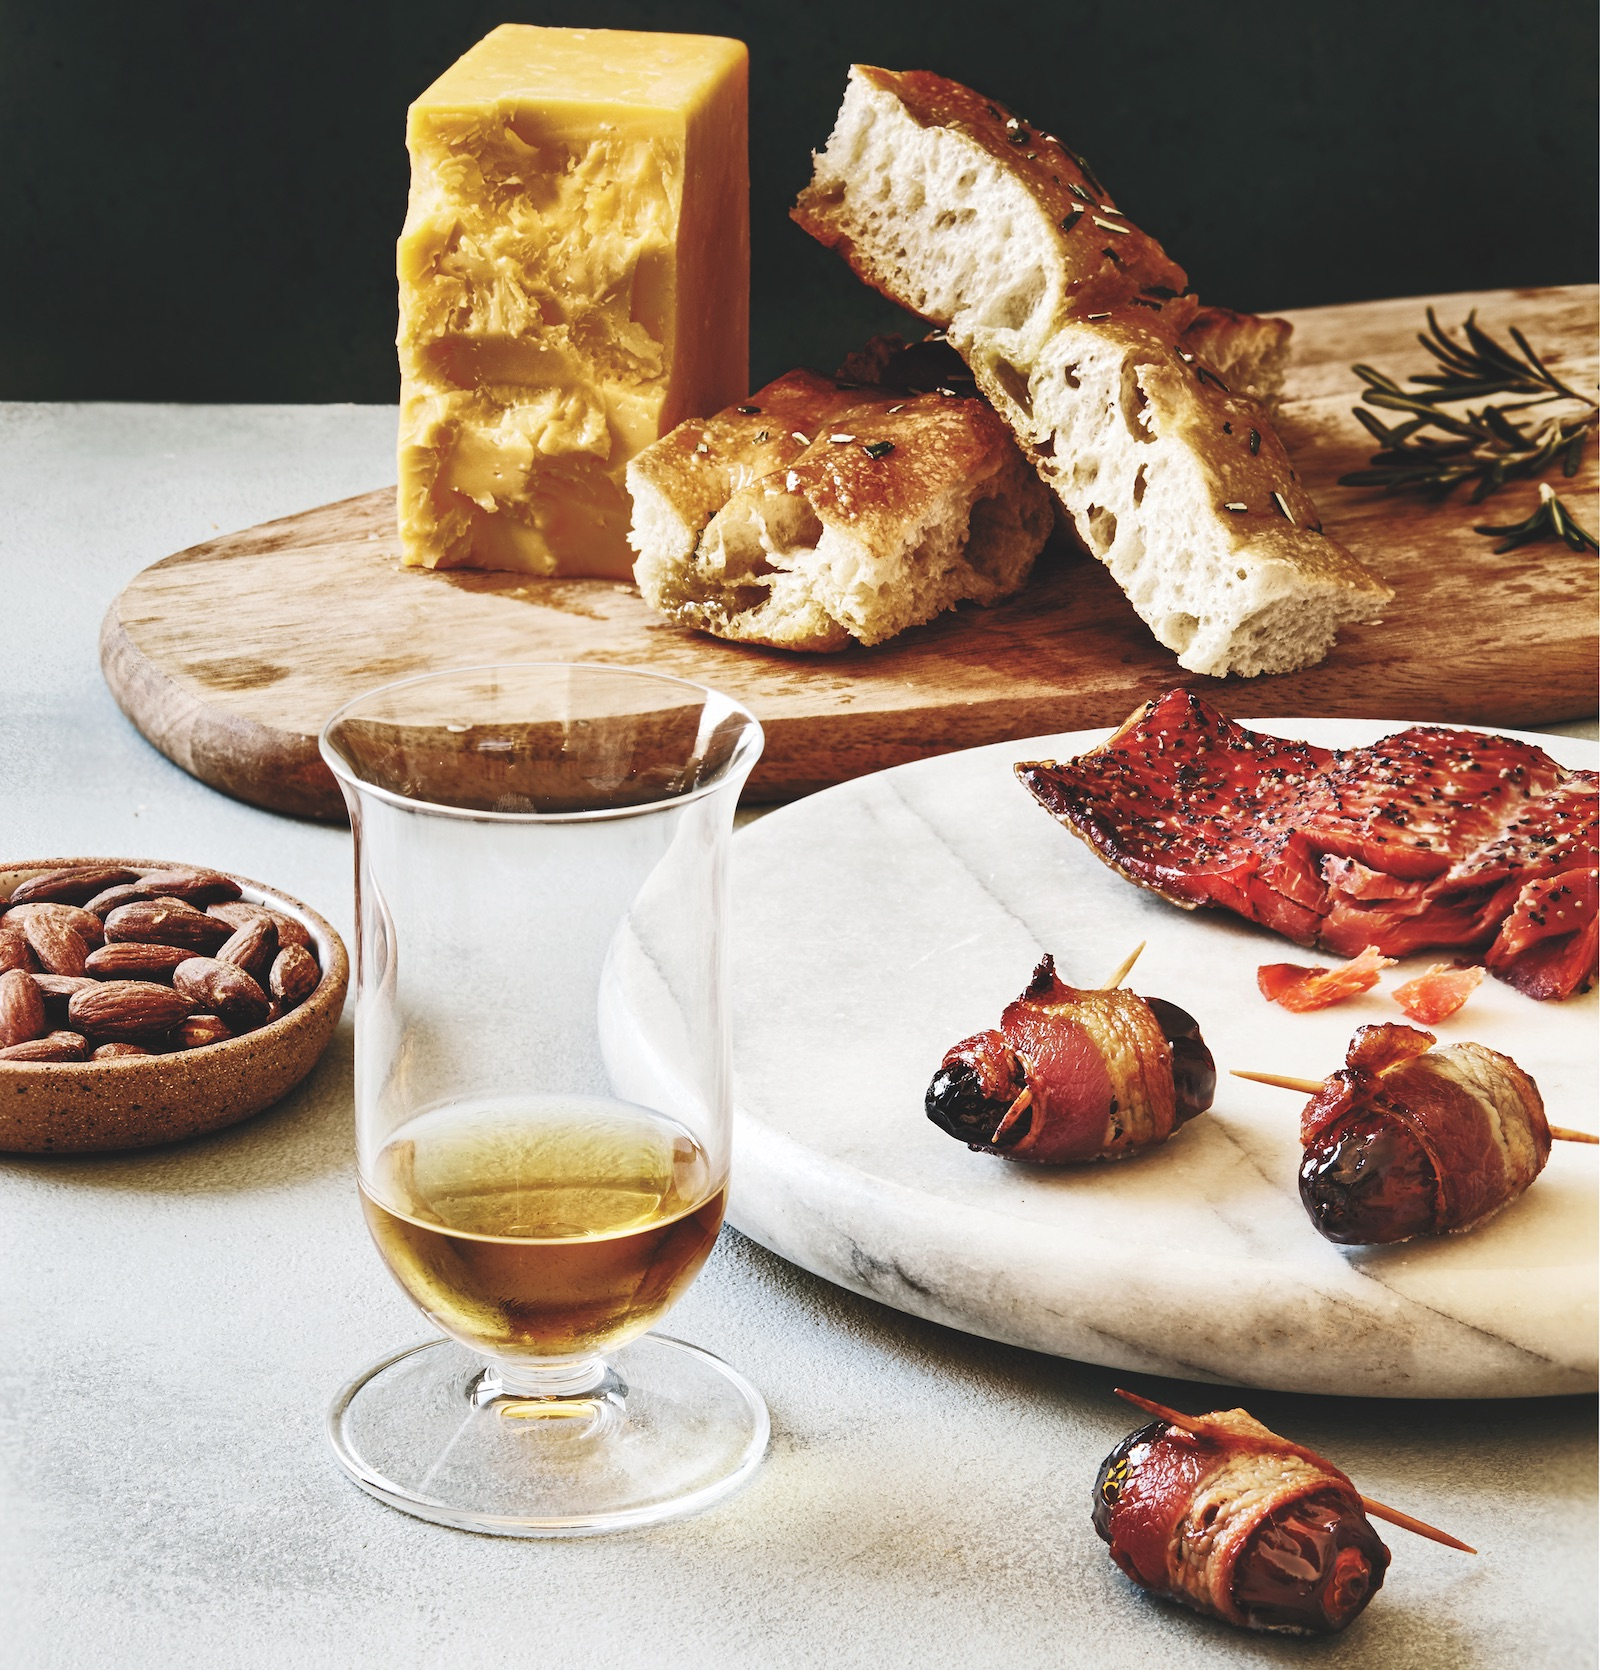 focaccia, cheddar, bacon-wrapped dates, almonds, smoked salmon with a glass of sherried single malt scotch